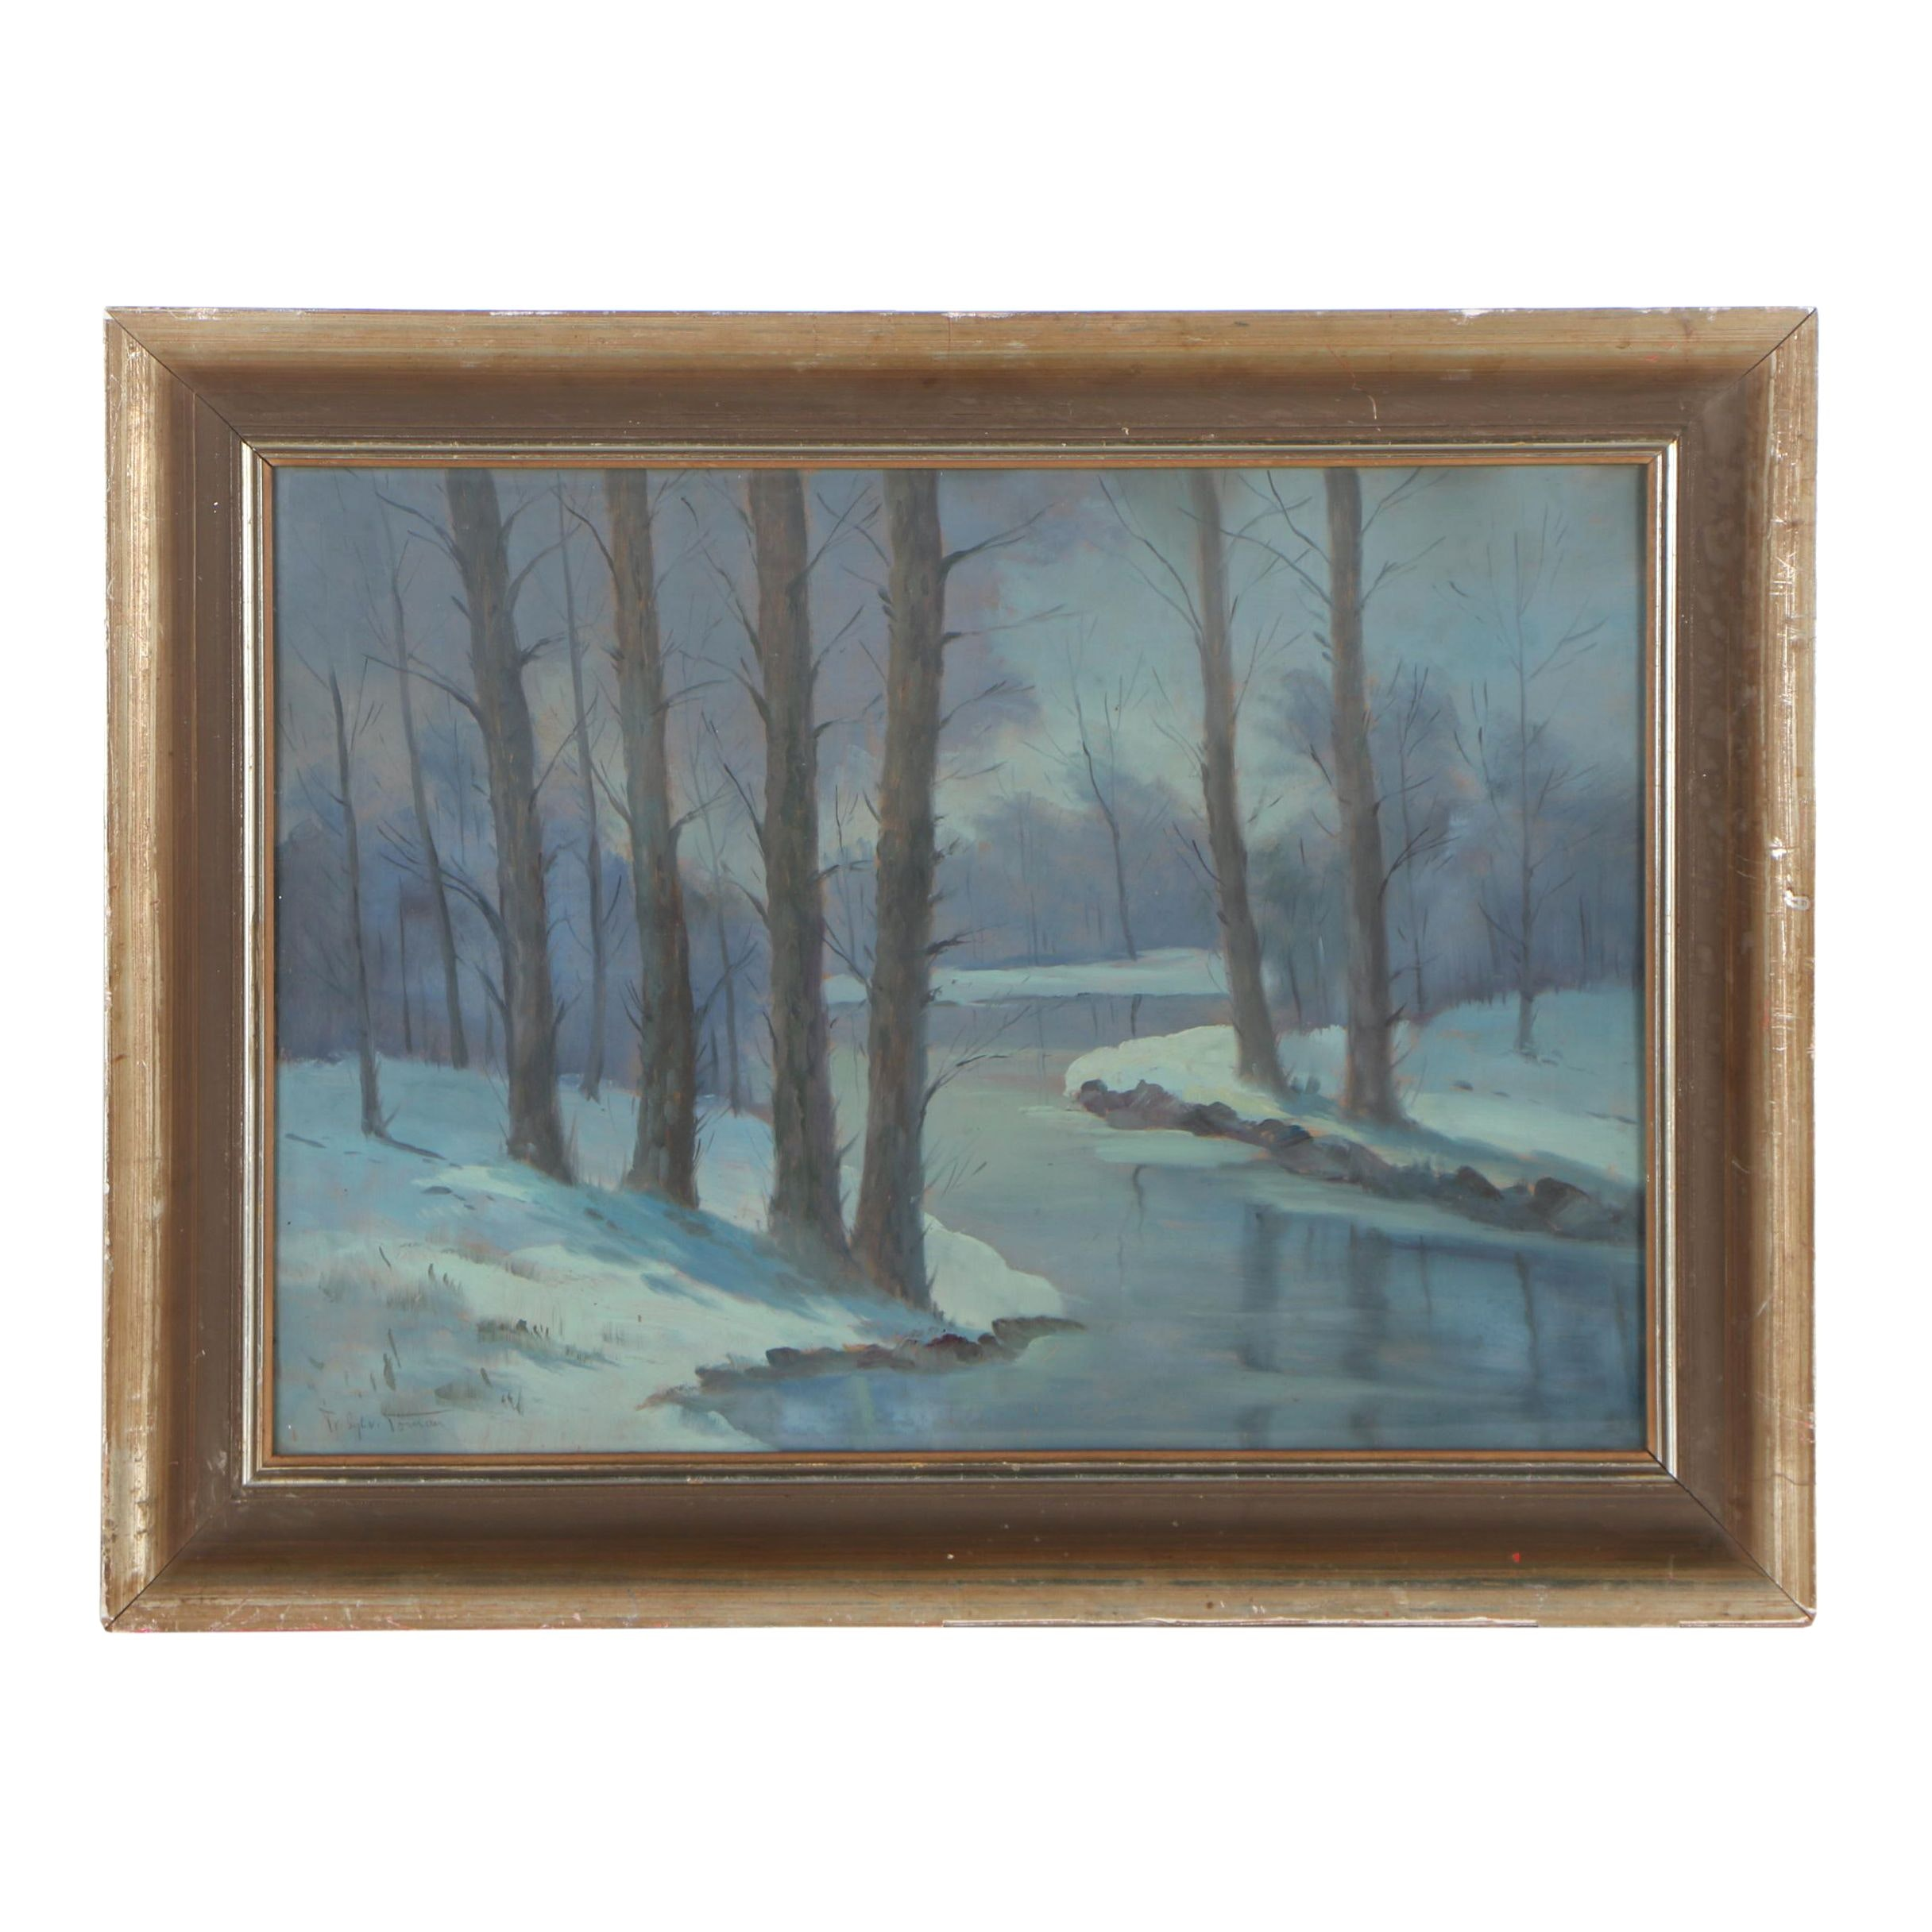 Mid 20th Century Oil Painting of a Winter Sylvan Landscape